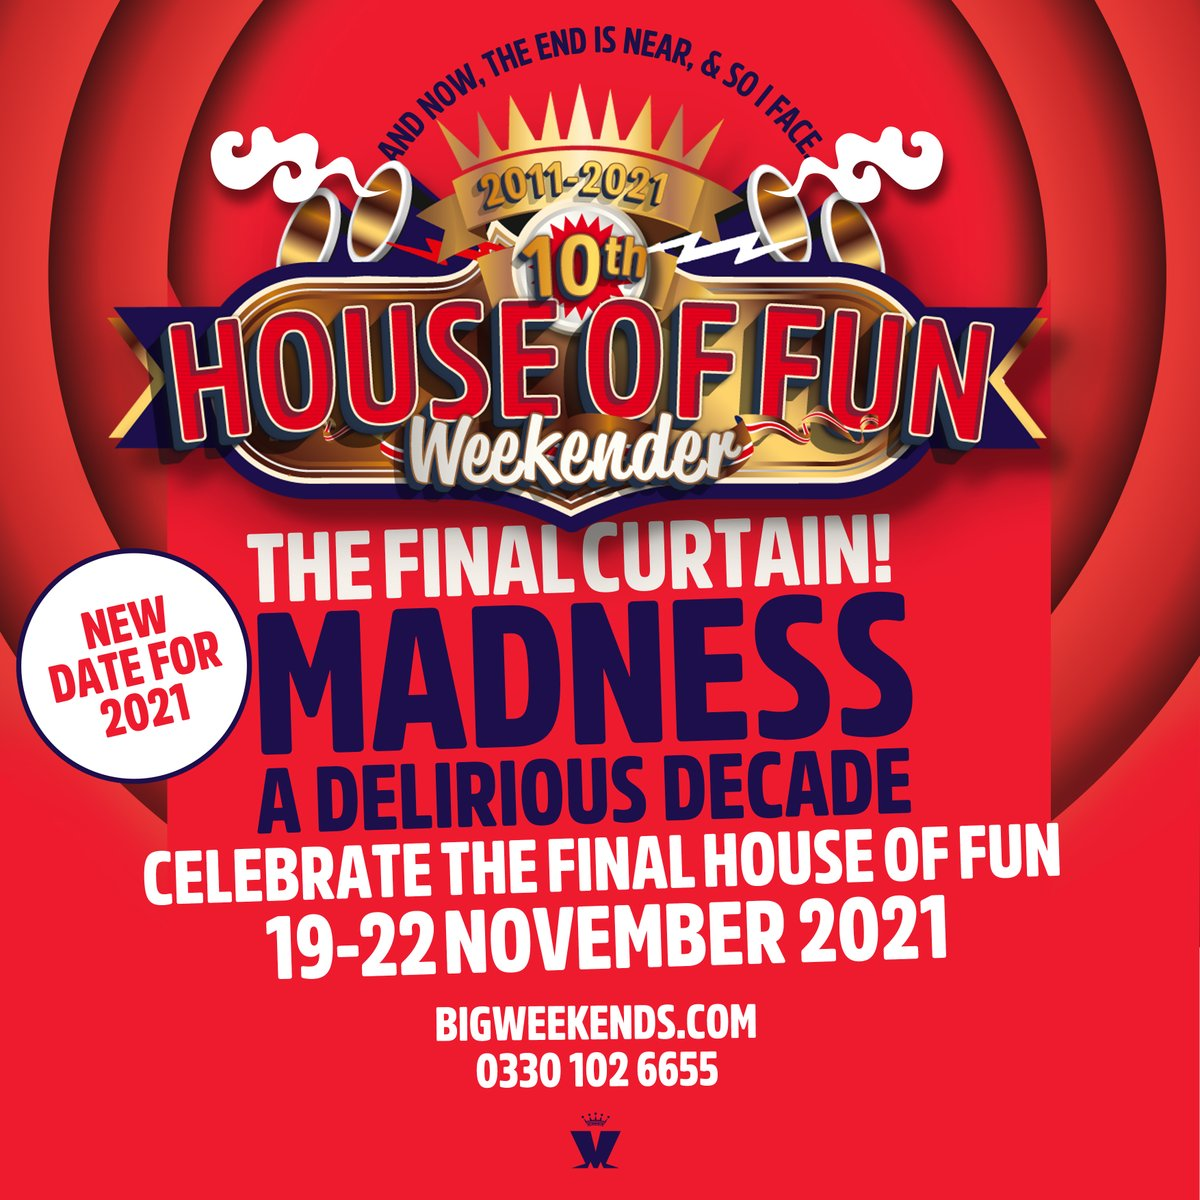 It's with a heavy heart that we confirm there will be no @madhouseoffun this year. That final curtain will have to wait until the rescheduled date of 19th-22nd November 2021!! Please see here for more info: bigweekends.com/help-contact/r…